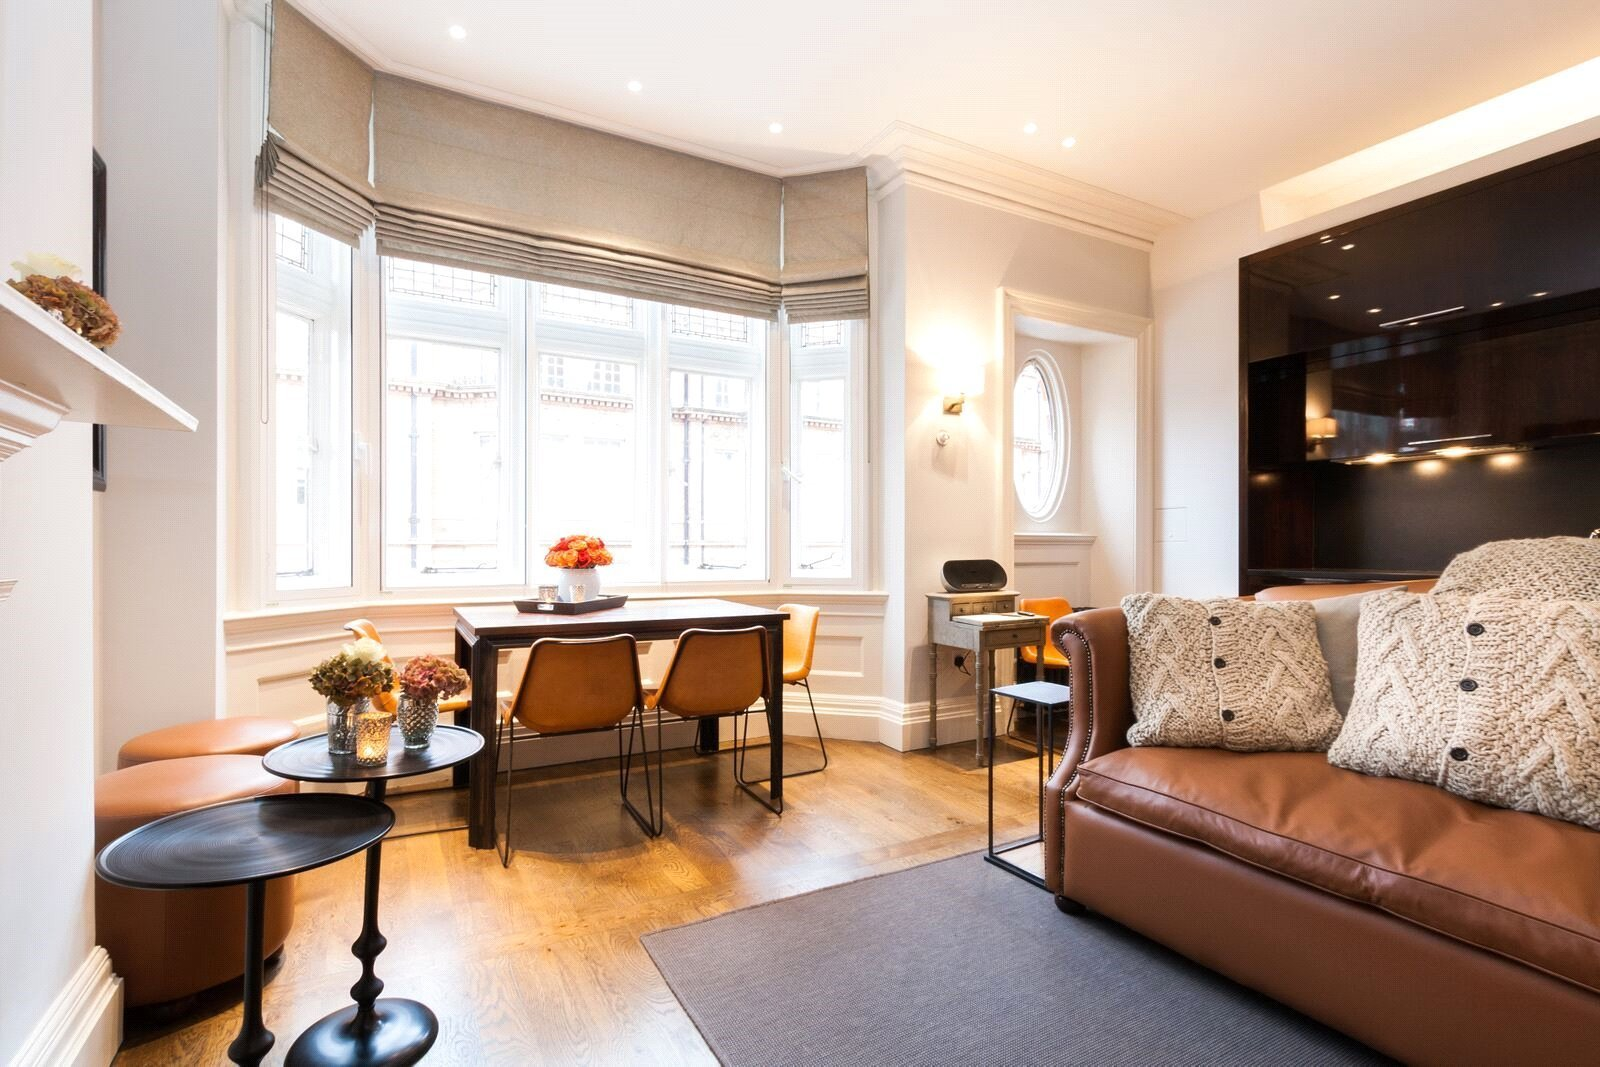 Best North Audley St 1 Bed Flat Barnes Londres Agence With Pictures Original 1024 x 768